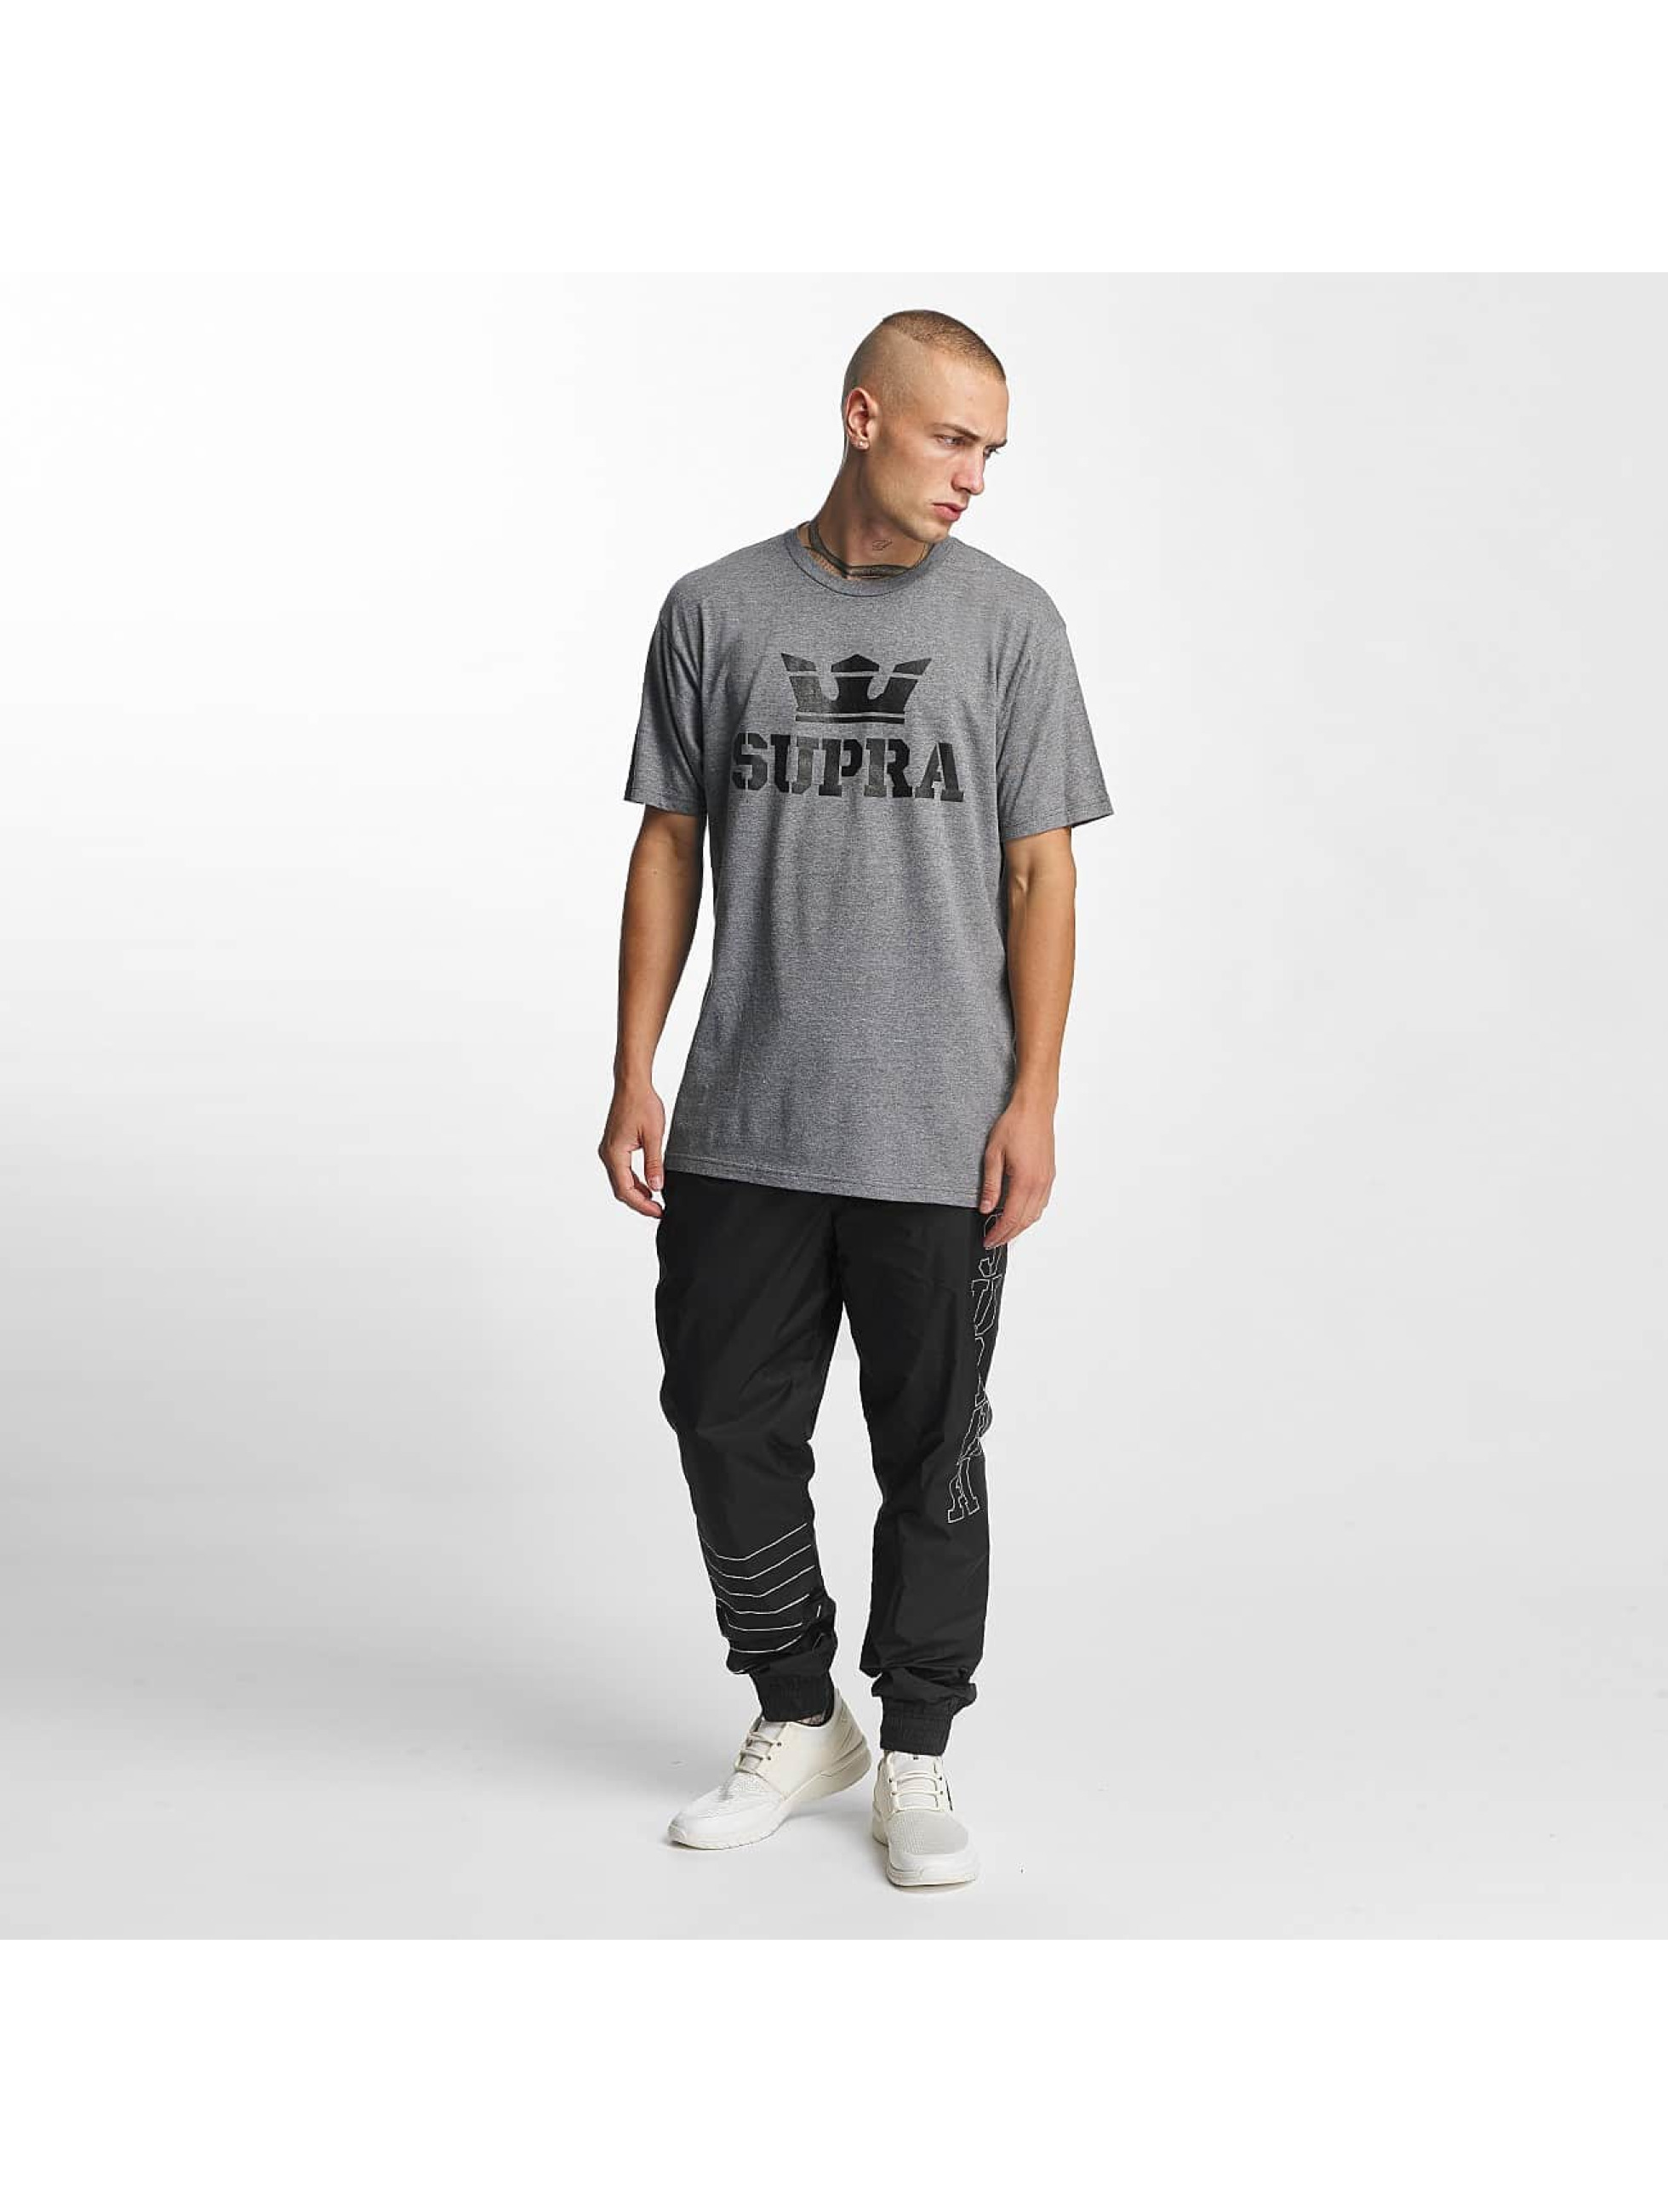 Supra T-Shirt Above grau